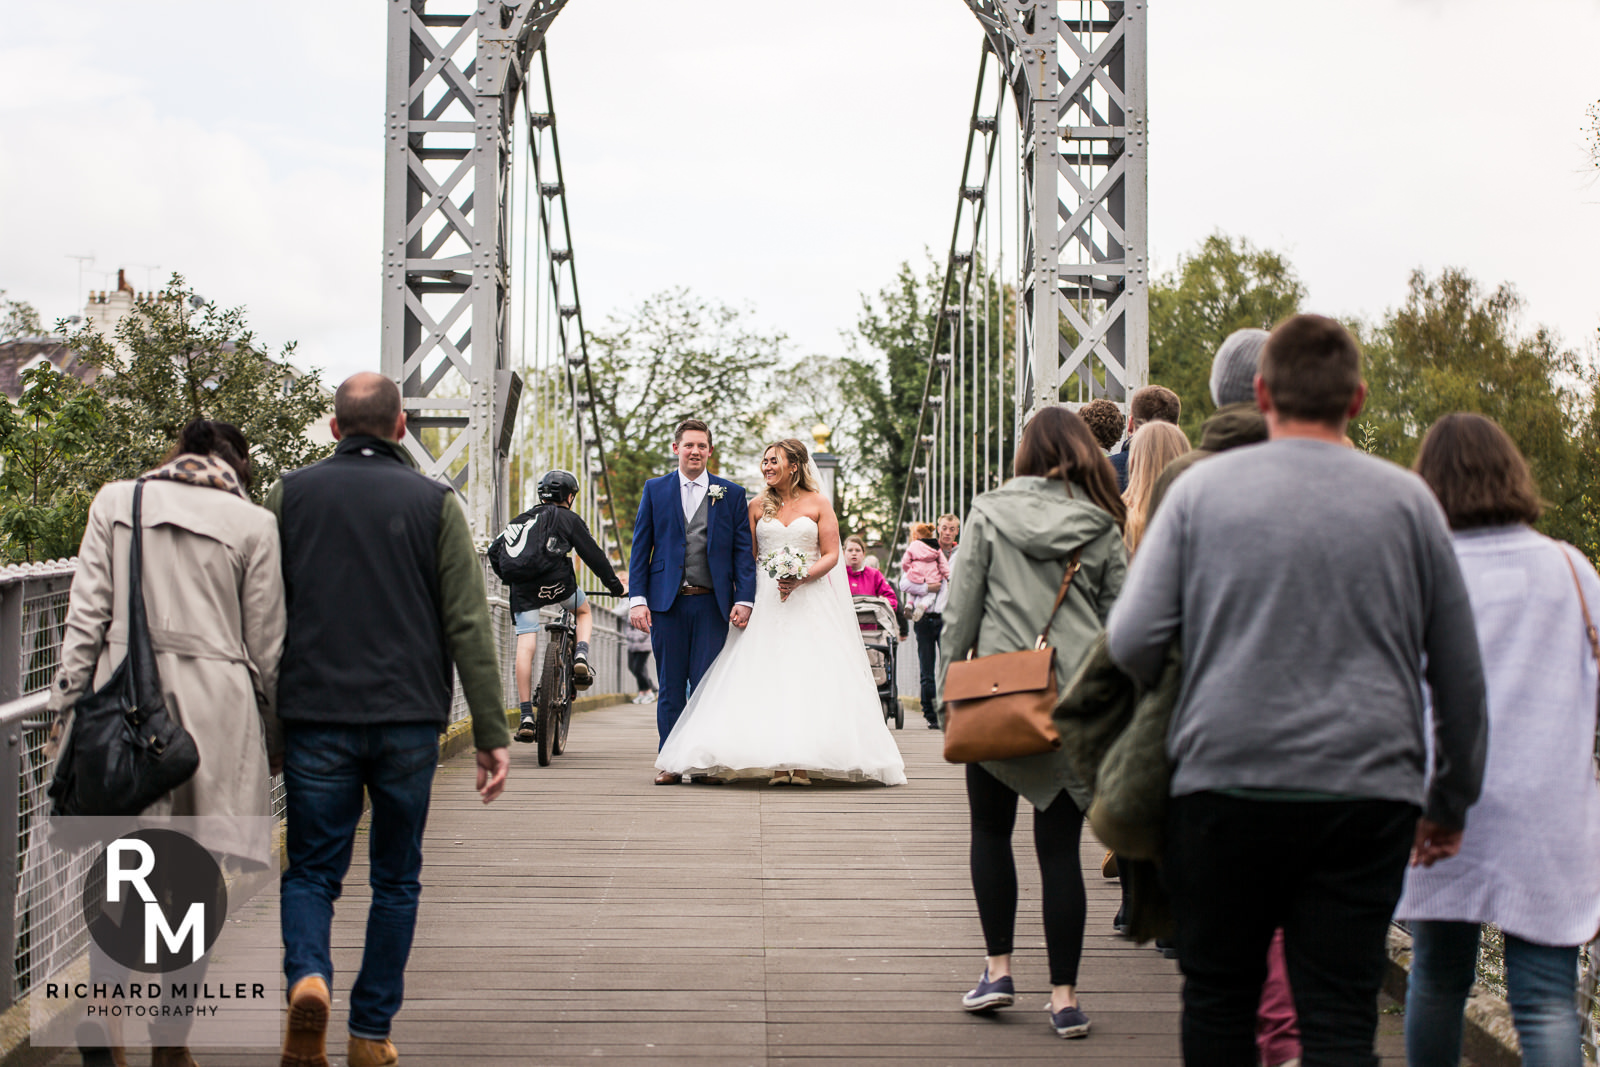 Dale Natalie Web 483 - An Awesome Chester Wedding at Oddfellows